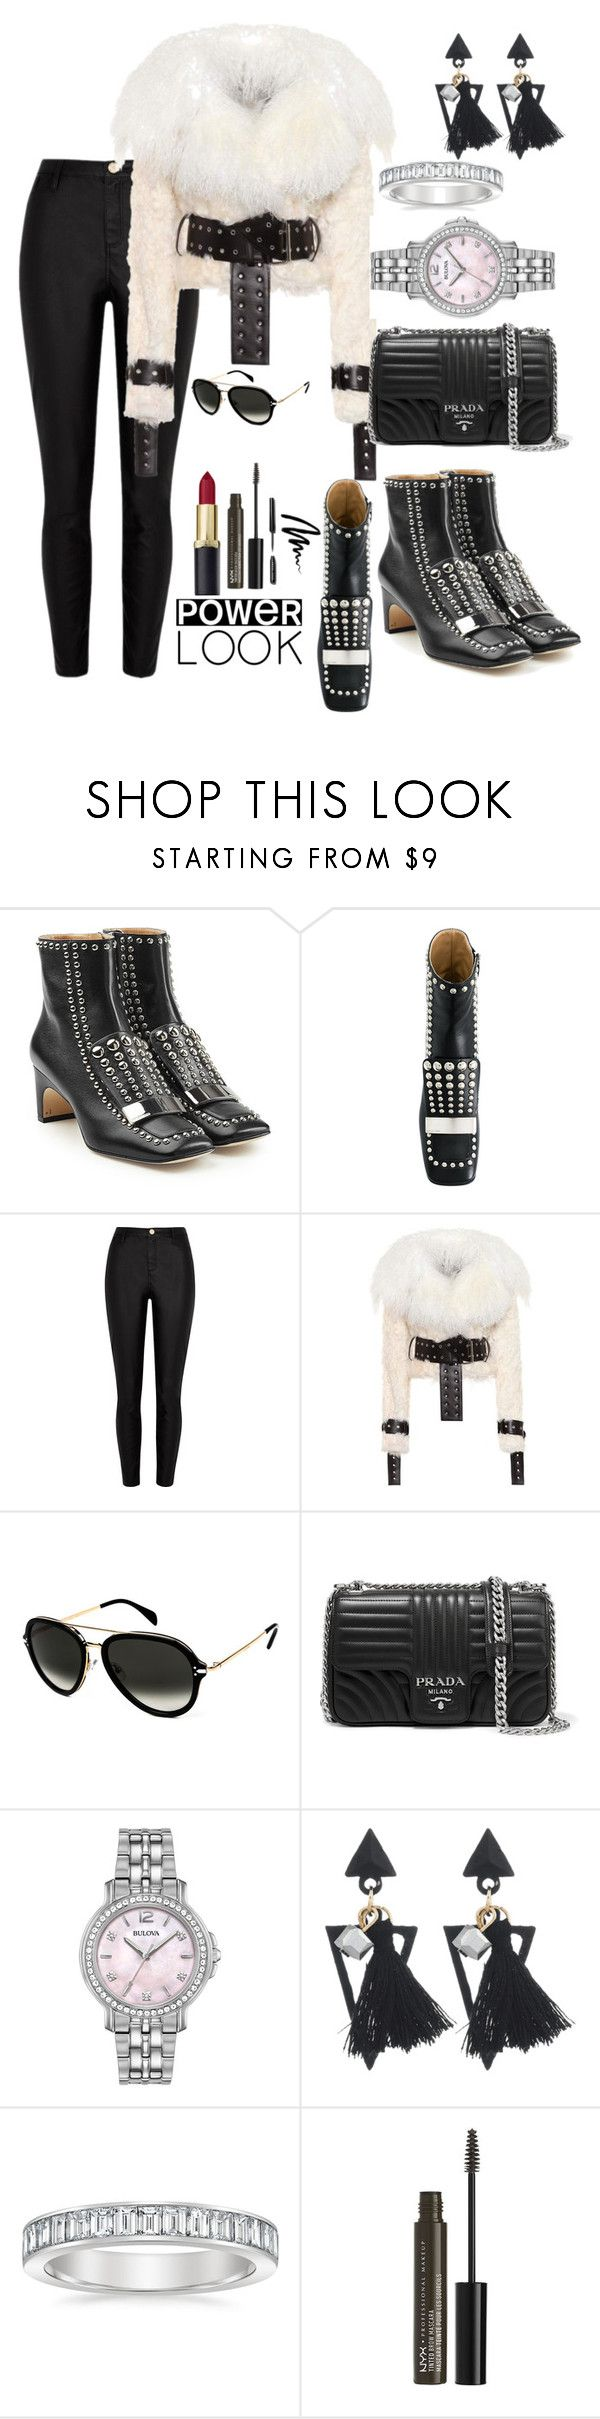 """Stony"" by lmarieee ❤ liked on Polyvore featuring Sergio Rossi, River Island, Monse, CÉLINE, Prada, Bulova, NYX and Bobbi Brown Cosmetics"